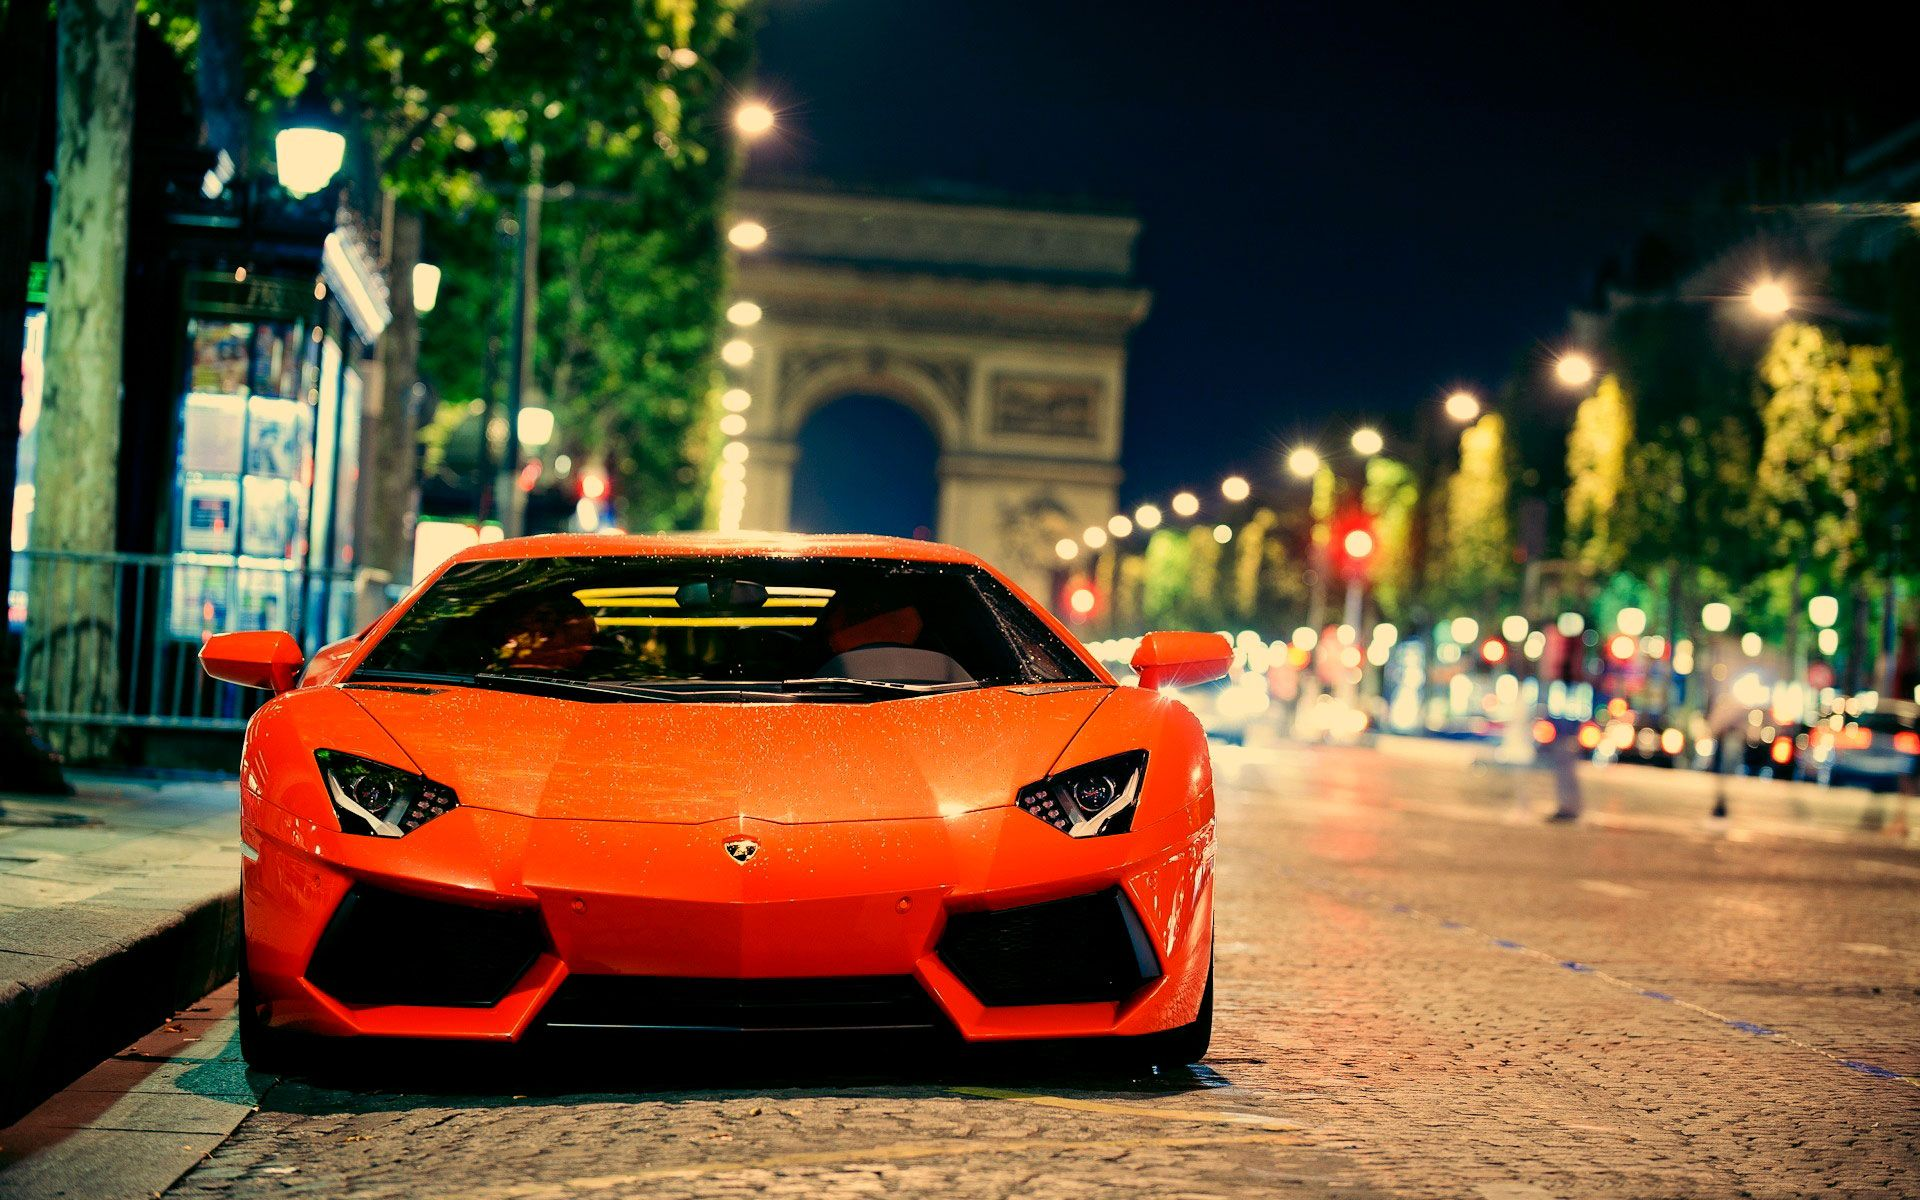 Hd wallpaper cars - Full Hd P Cars Wallpapers Desktop Backgrounds Hd Pictures 1920 1200 Cars Wallpaper